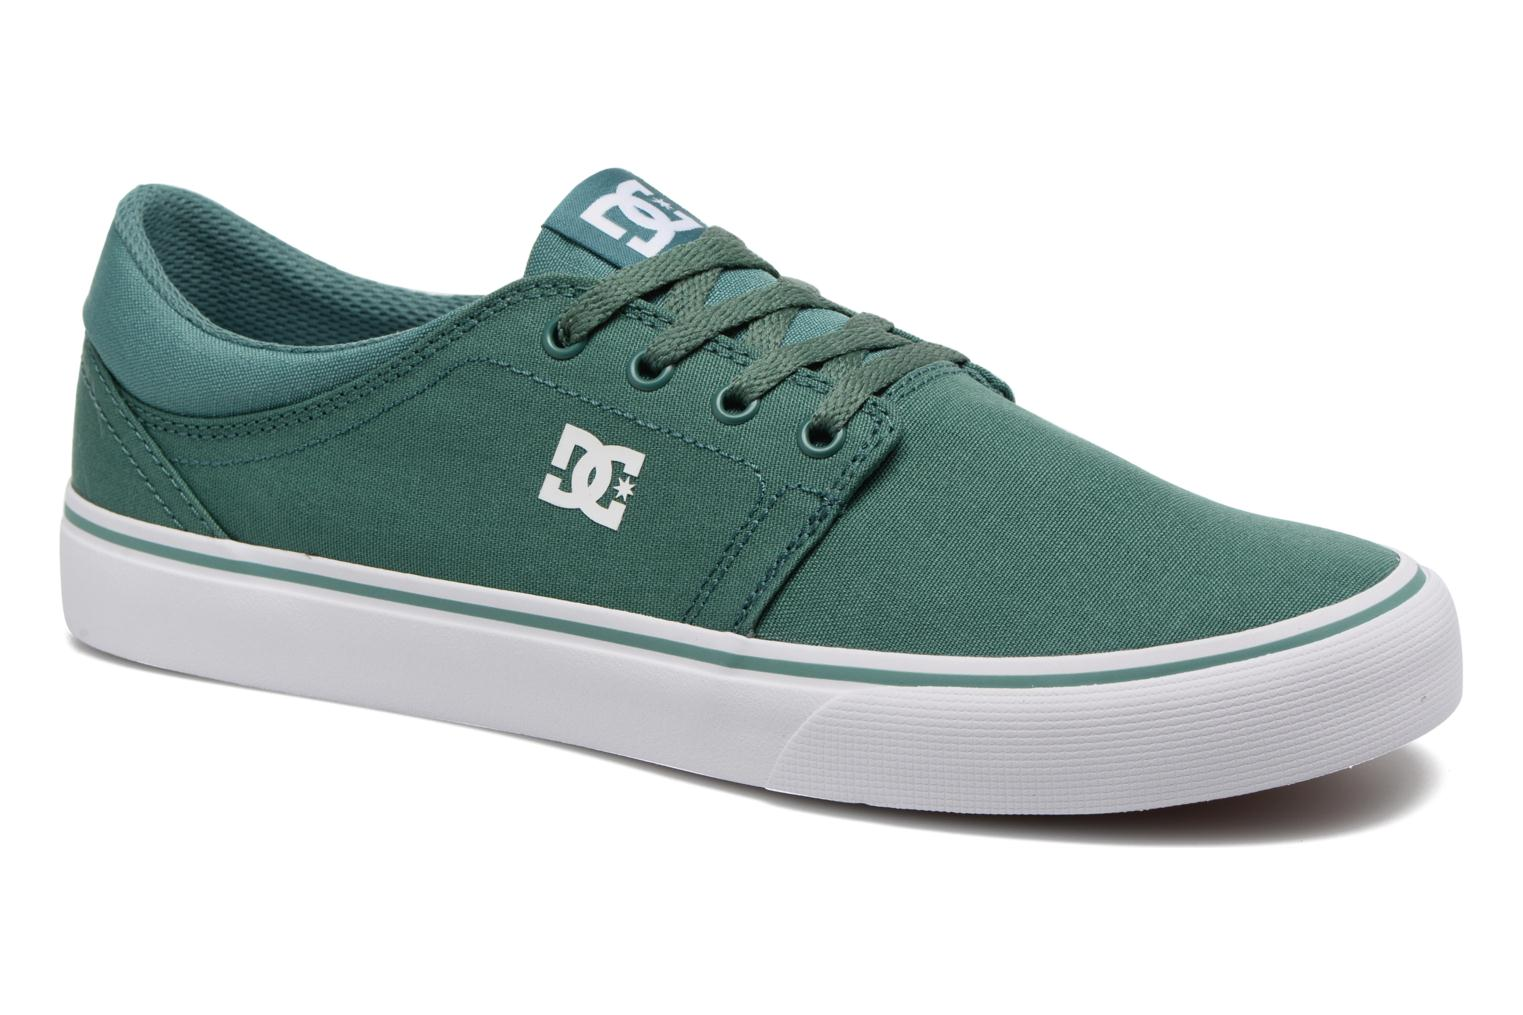 Sneakers DC Shoes Groen